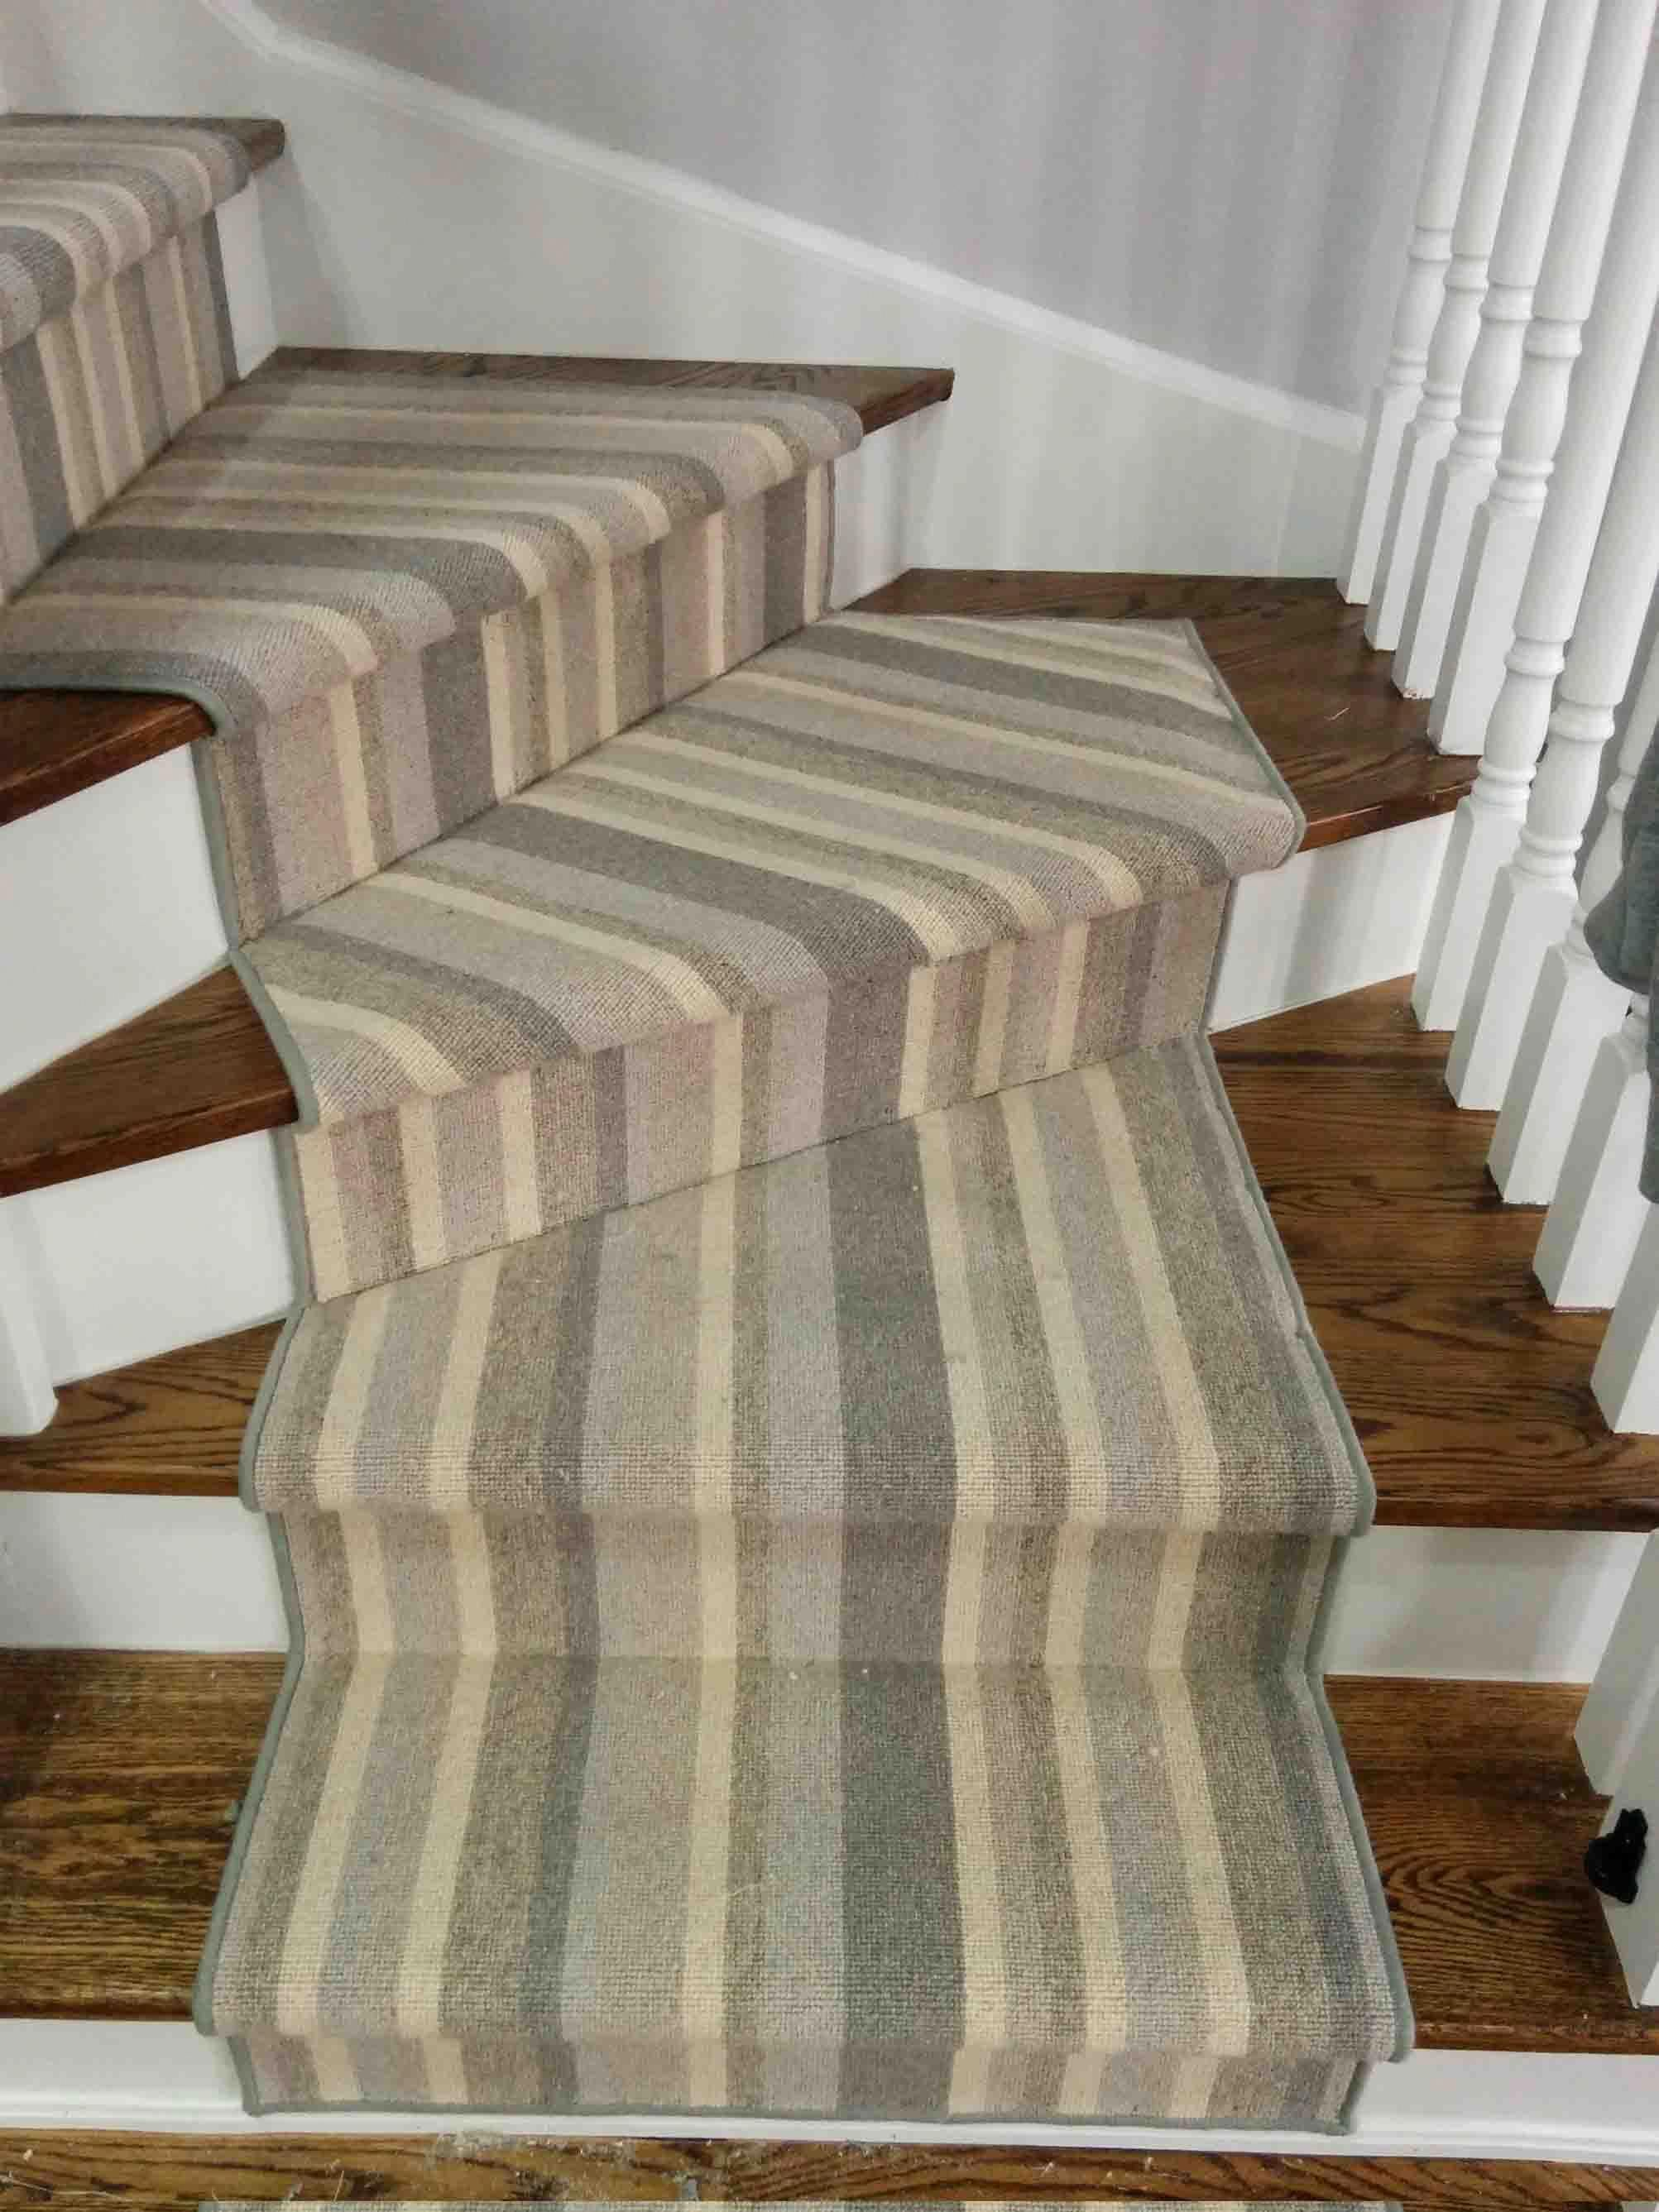 Best Carpet Runners For Stairs Lowes Carpetstairrunnerslowes Id 3697735604 Carpetrunners… Stair 400 x 300